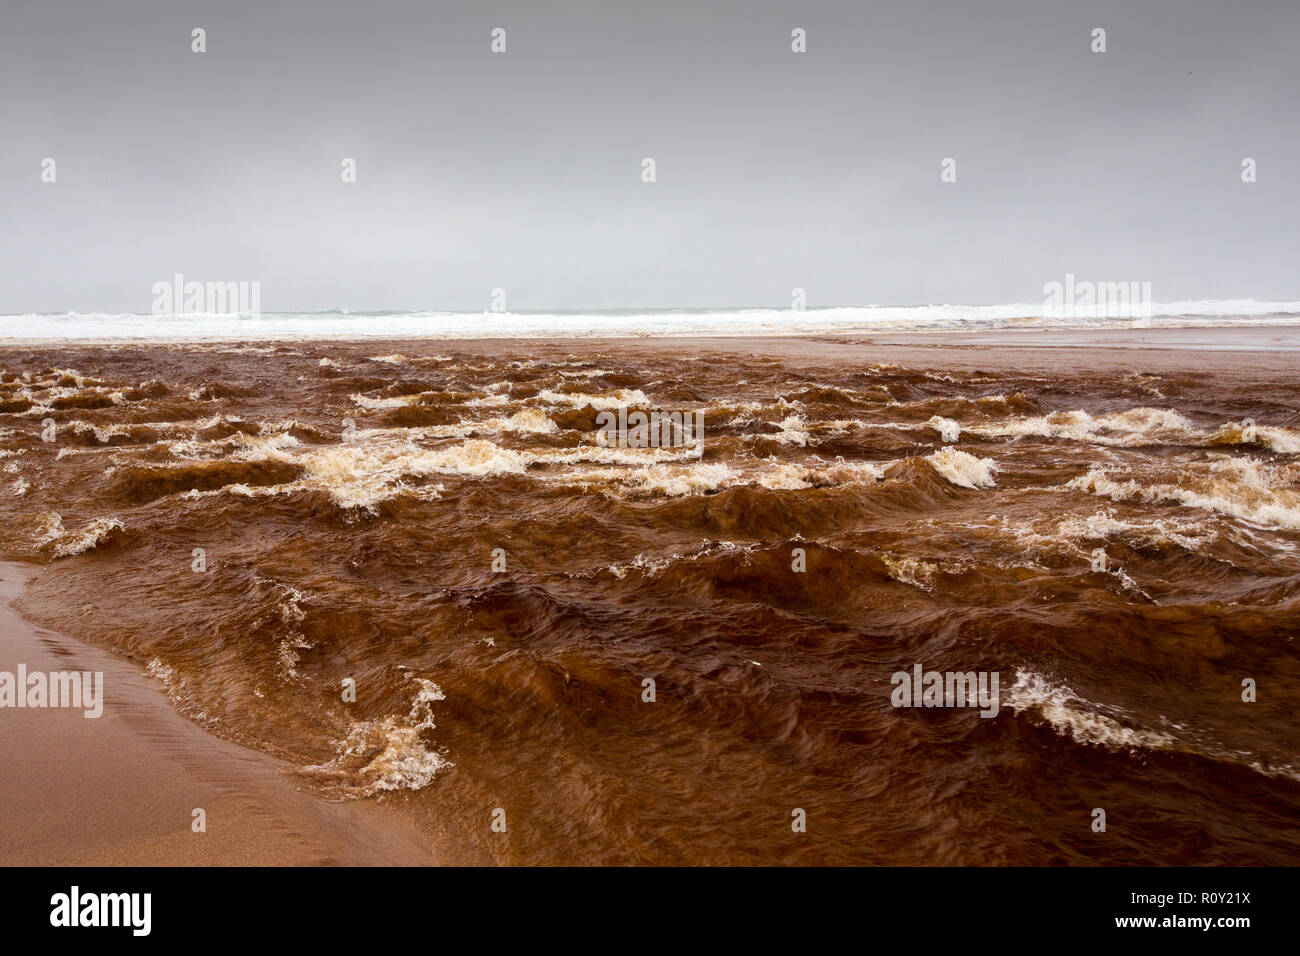 The outflow of Sandwood loch in flood conditions crossing the beach at Sandwood Bay, Sutherland, Scotland, UK, with the water heavily stained by peat. - Stock Image